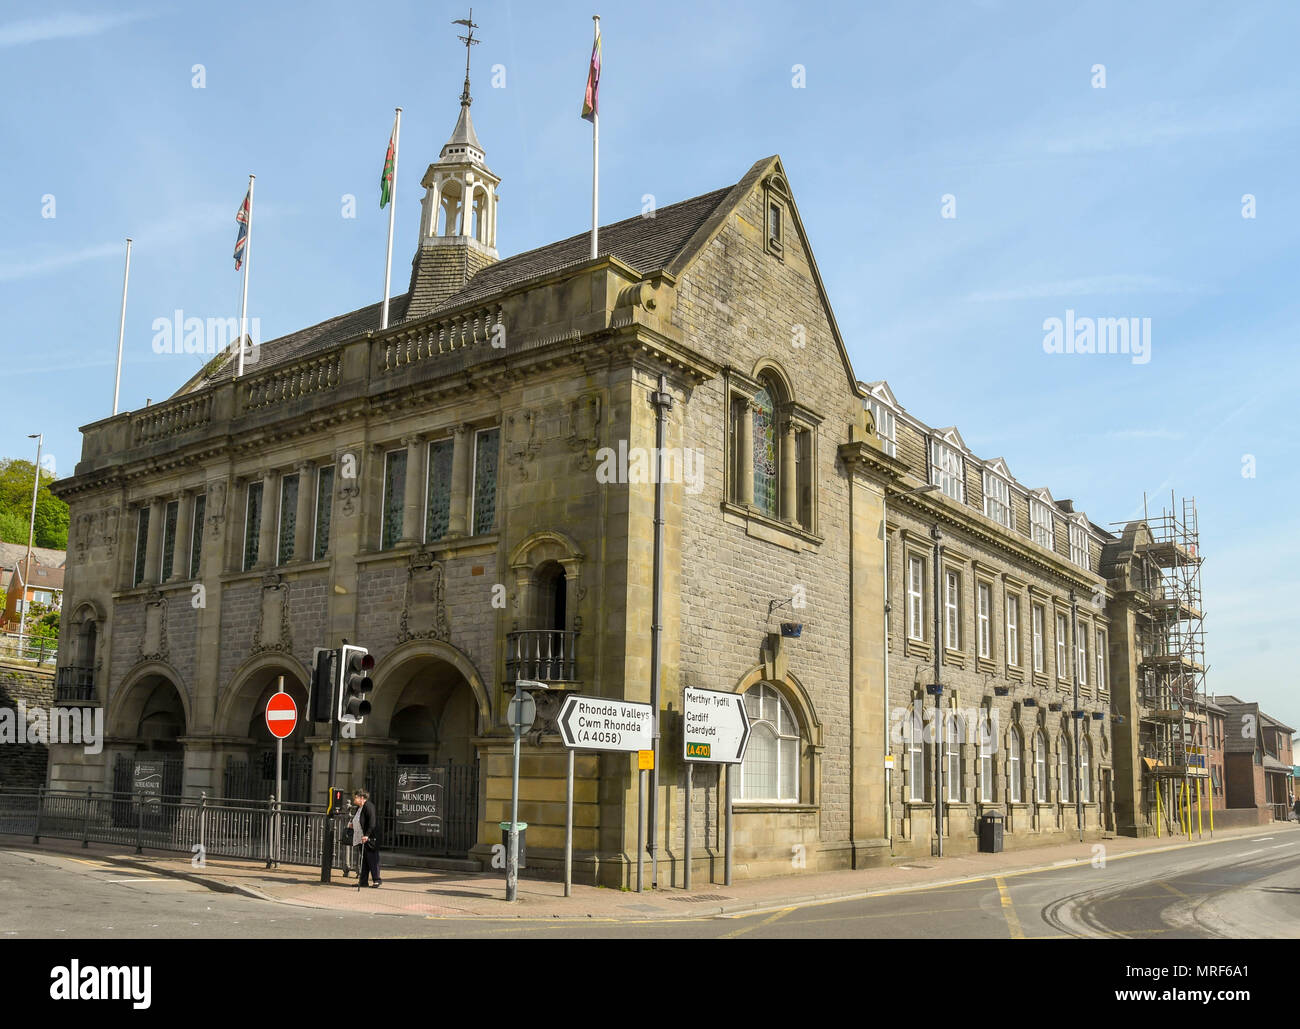 One of the municipal buildings in Pontypridd town centre. This building was once the adminstrative offices of Pontypridd Town Council - Stock Image